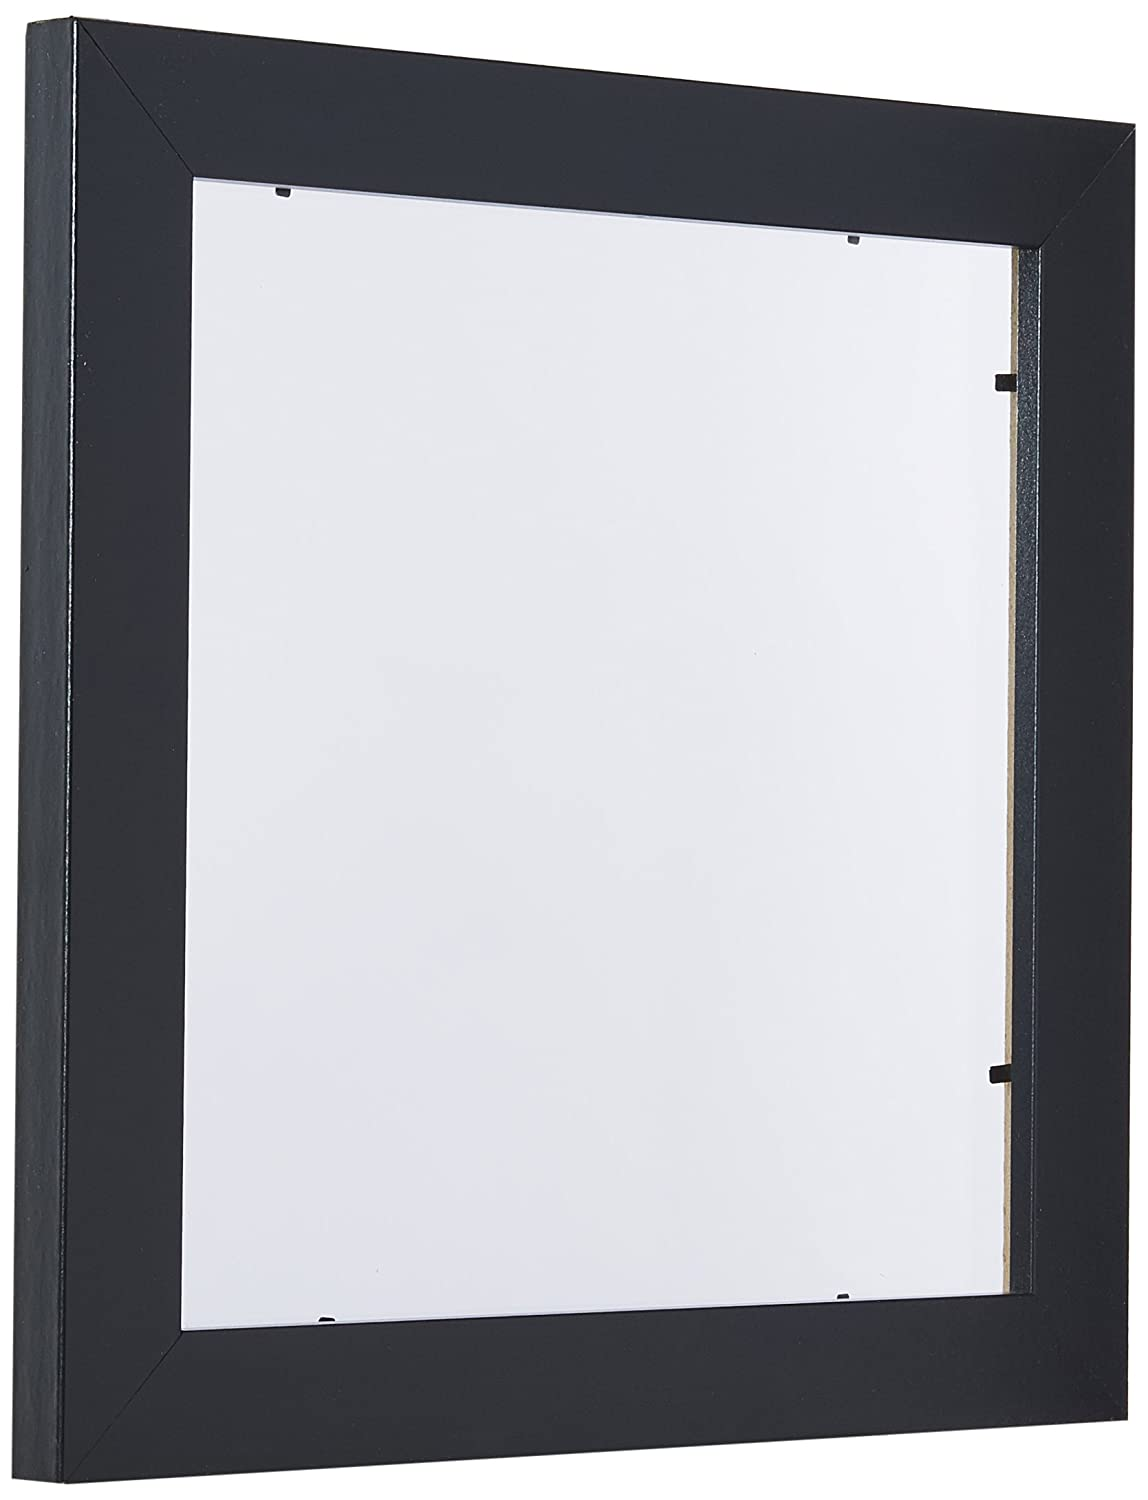 Amazon.com - ArtToFrames 10x10 inch Black Picture Frame ...